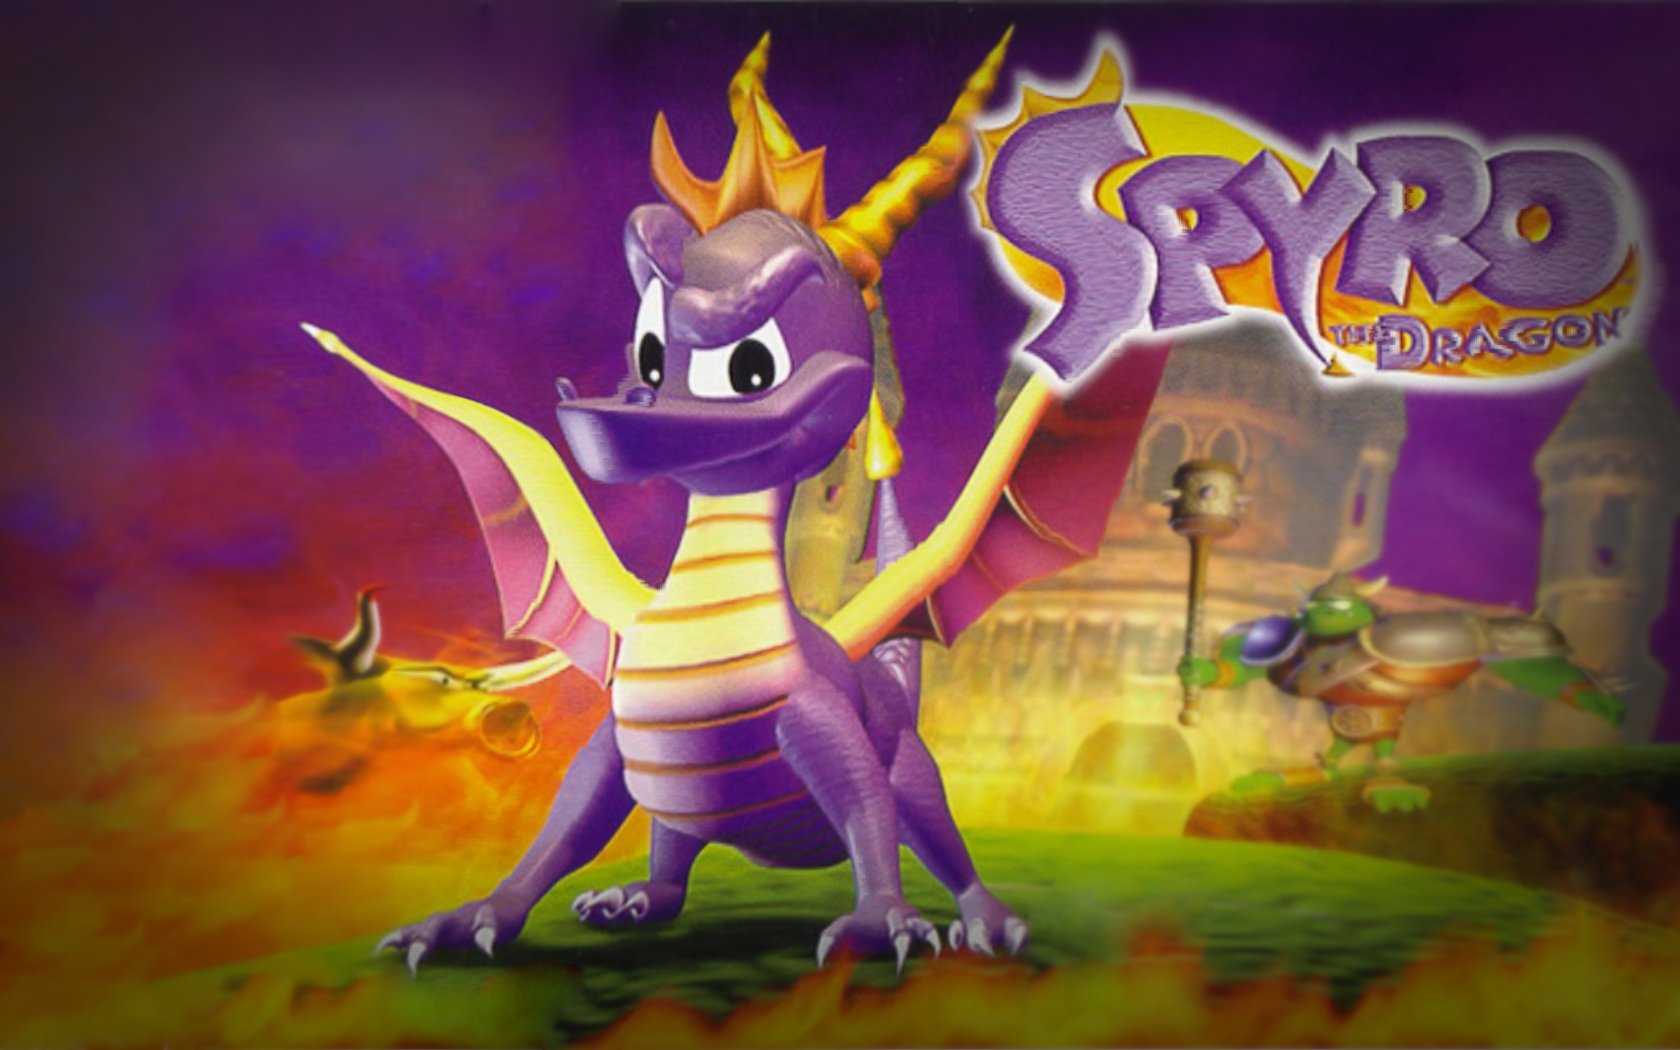 In arrivo una remastered di Spyro su PS4?